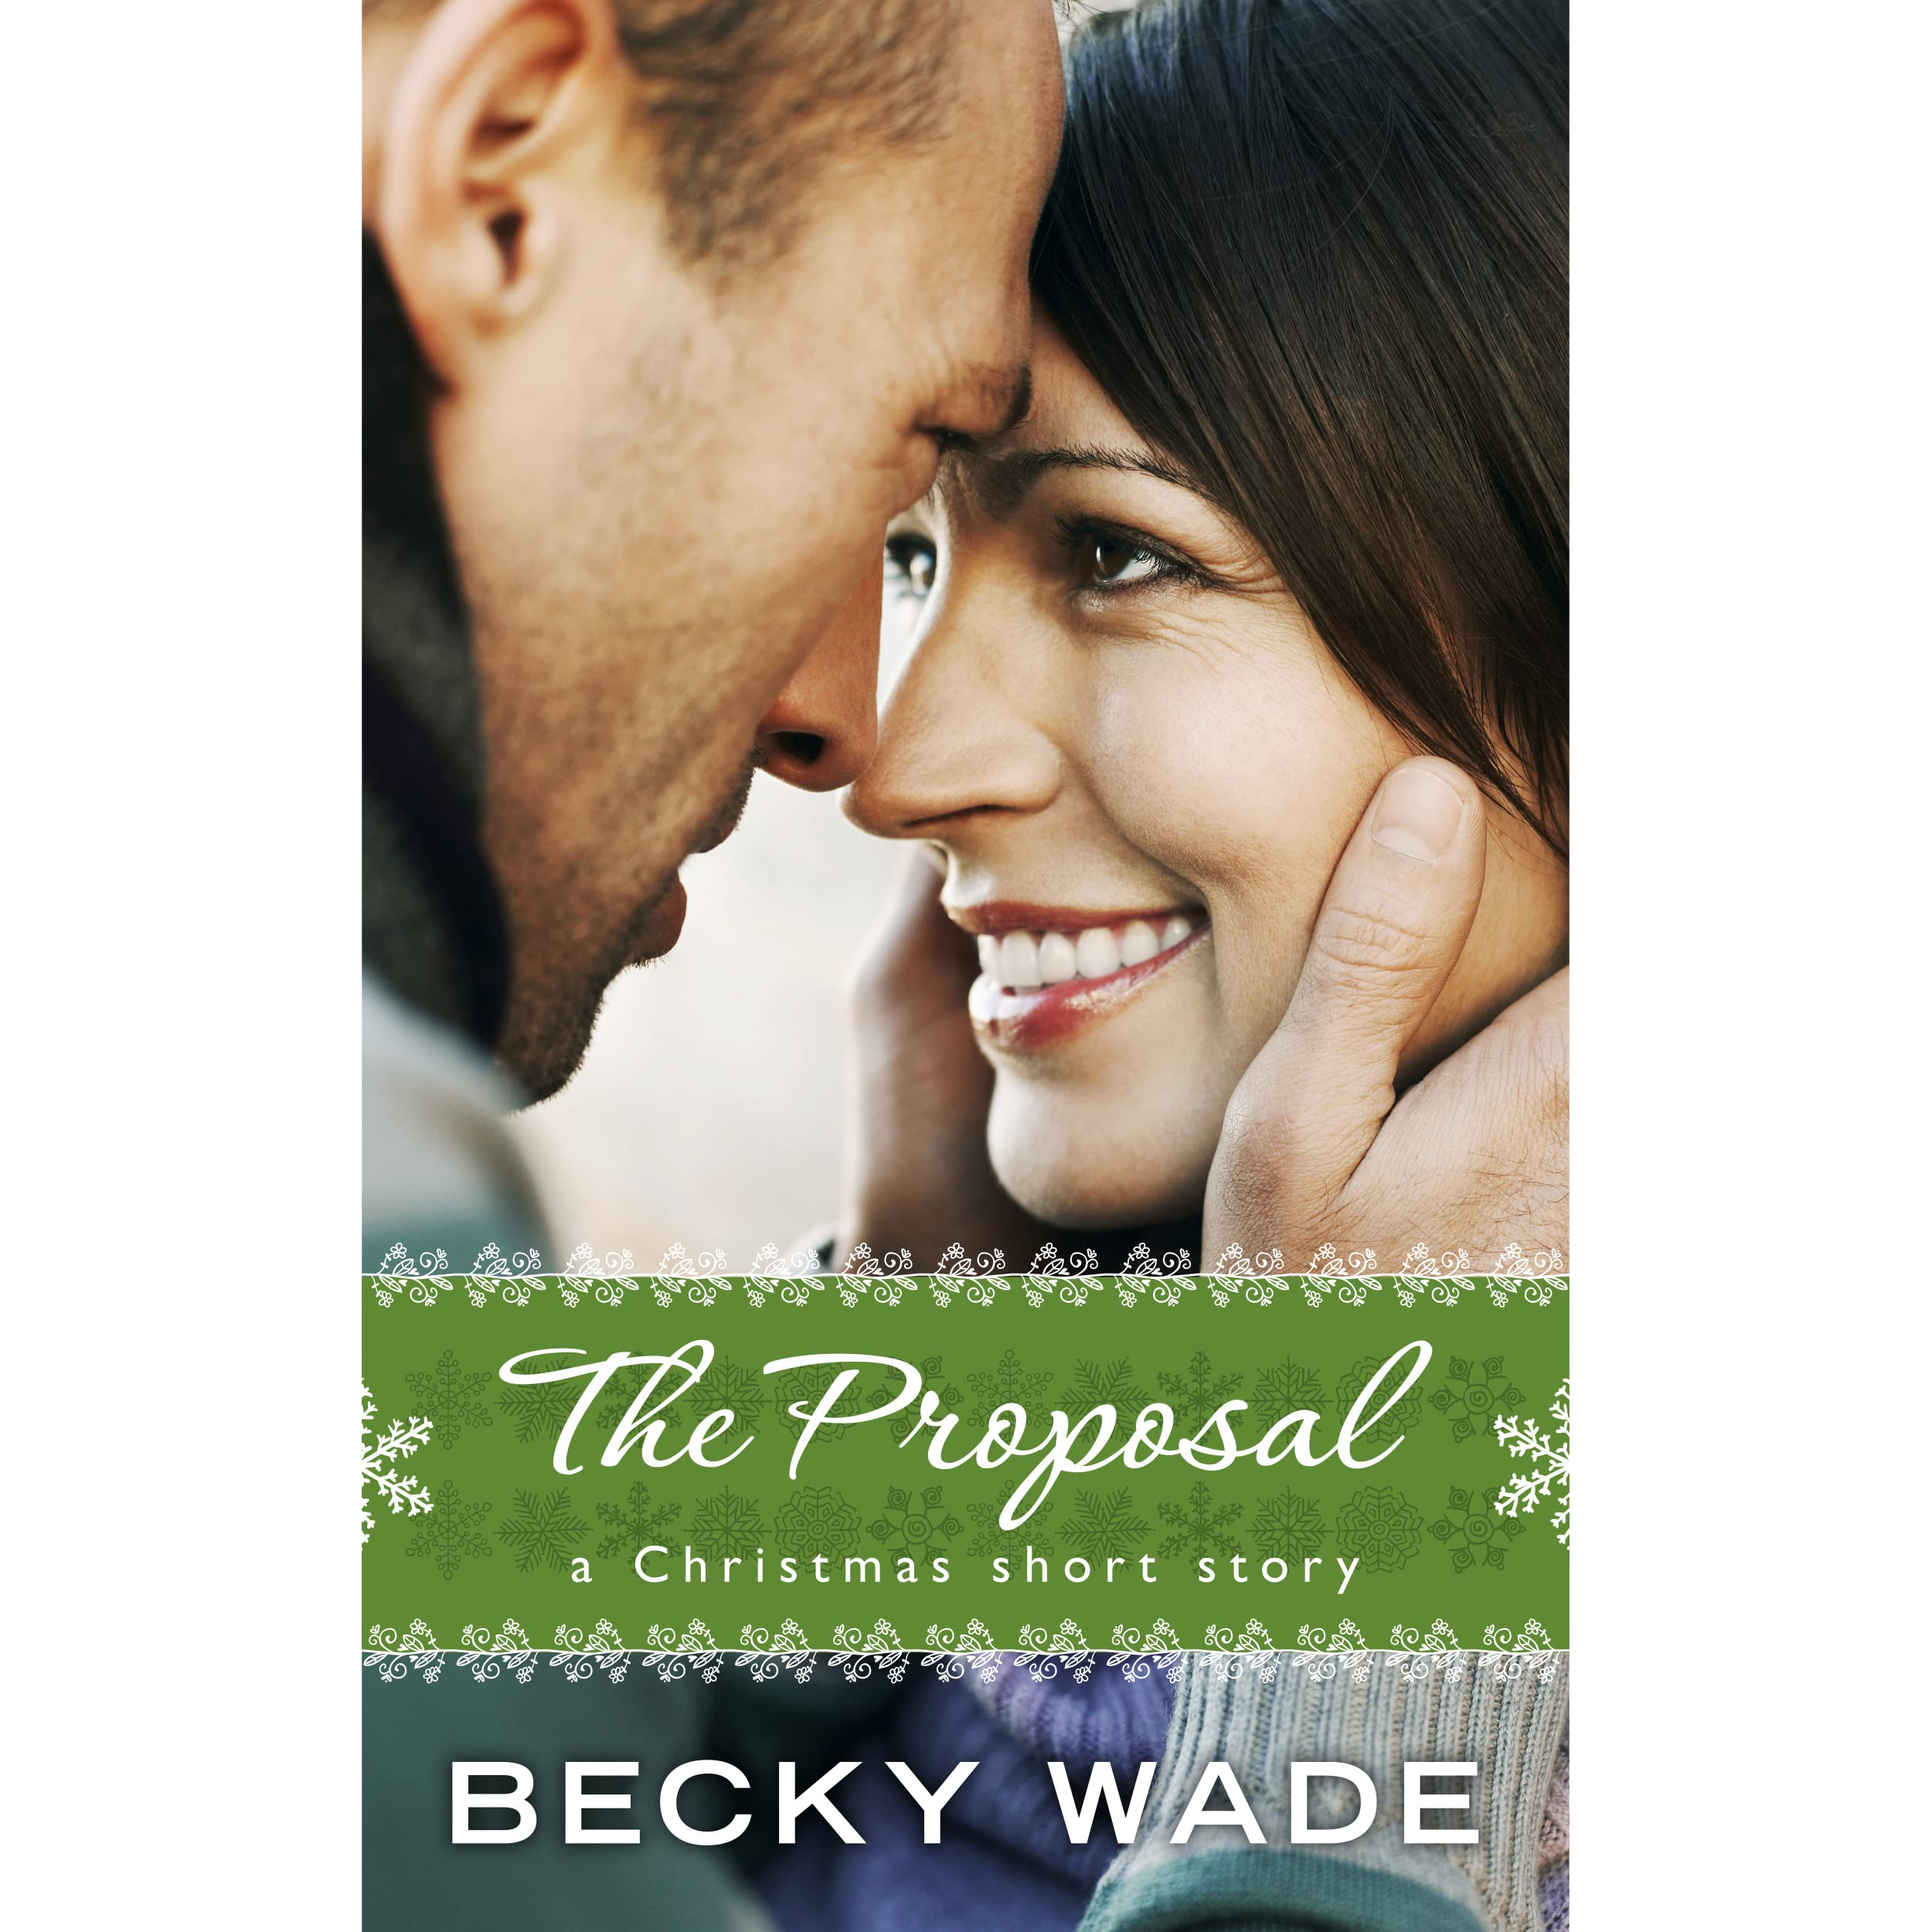 The Proposal (Porter Family #3.5) by <b>Becky Wade</b> — Reviews, Discussion, ... - 27874886._UY2500_SS2500_